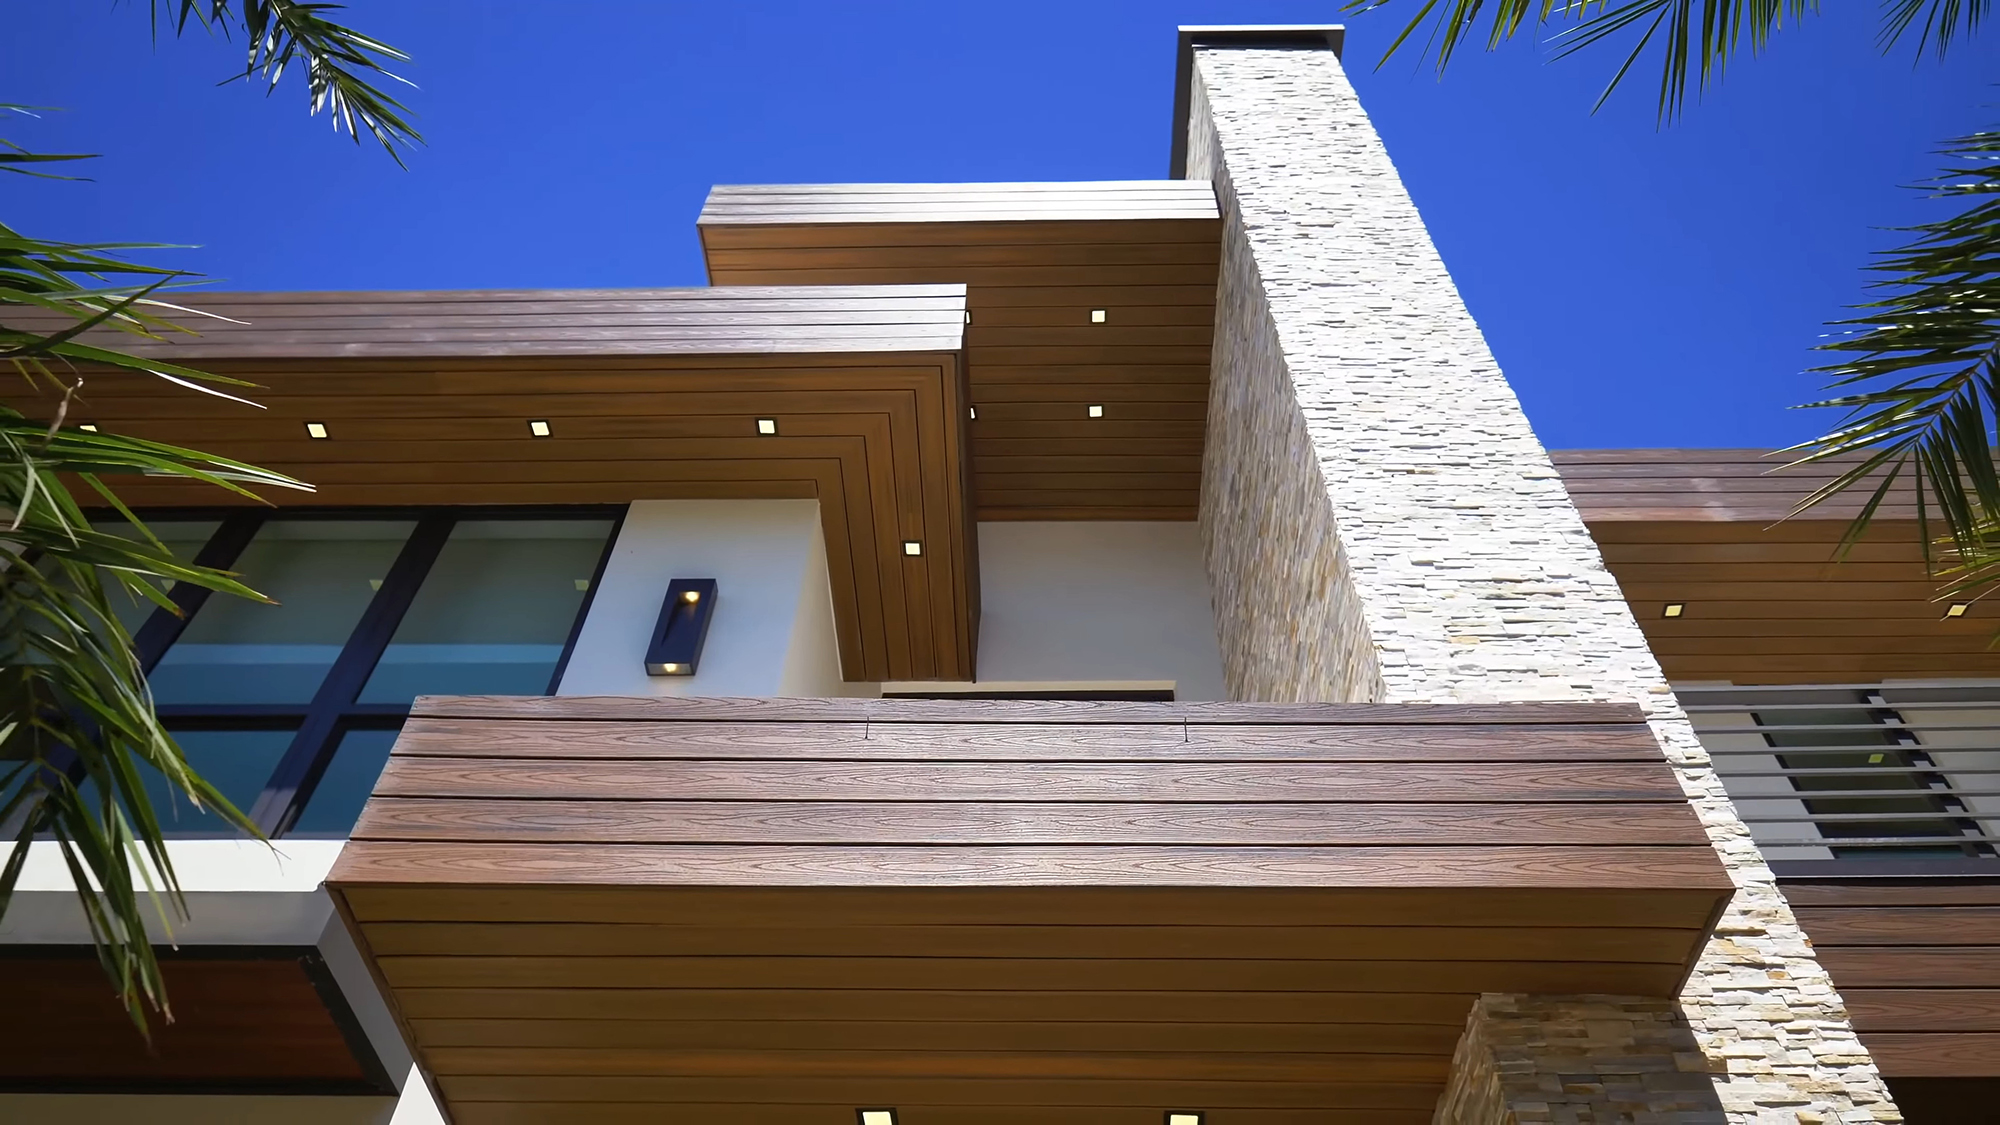 Ground level view of a flat roof house with Trex composite decking used as siding and soffits with square recessed lighting.